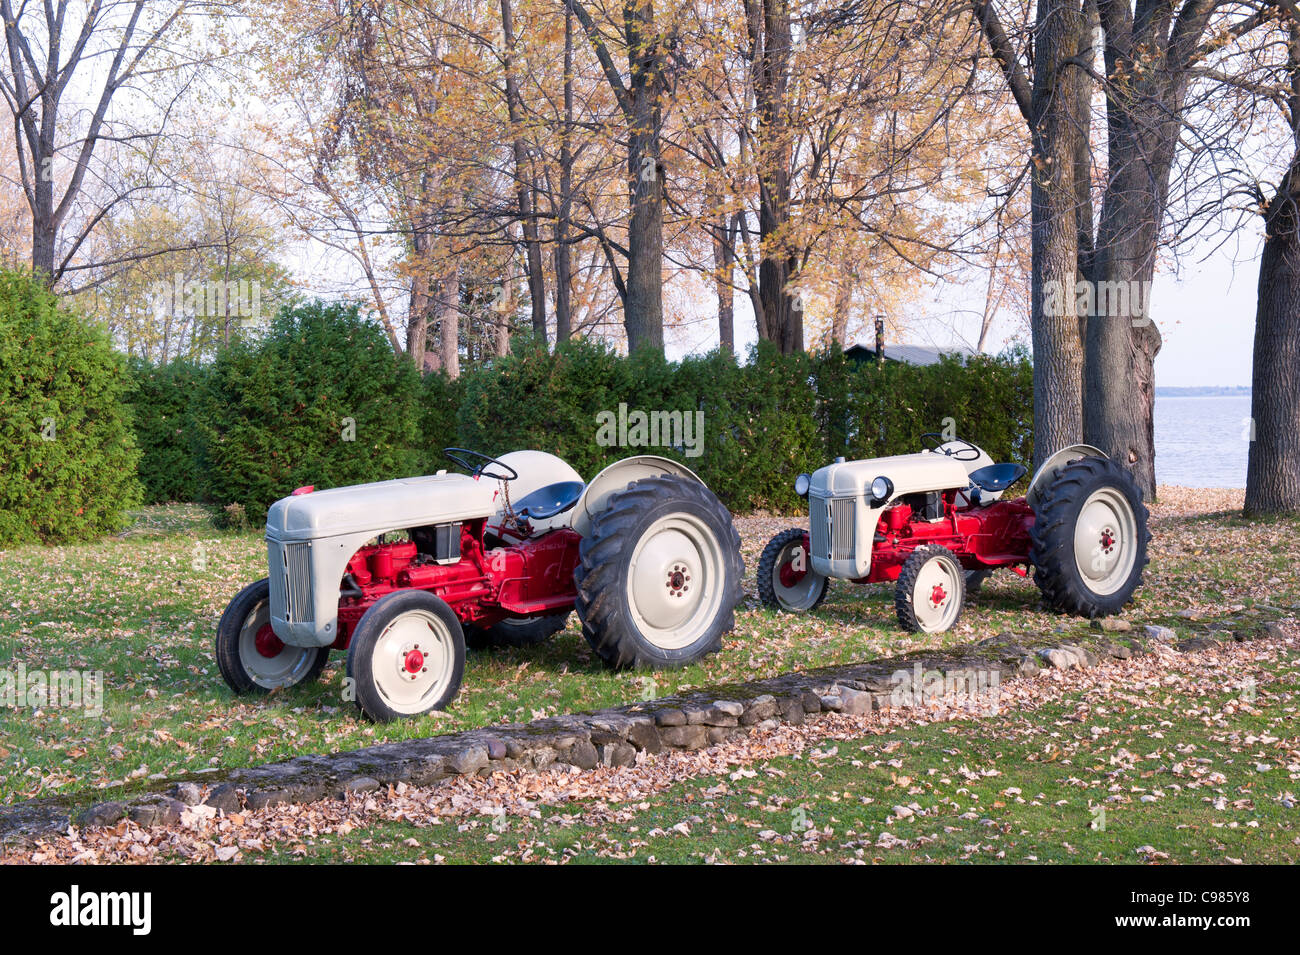 2 restored Ford 8N 1948 tractors Stock Photo: 40132940 - Alamy